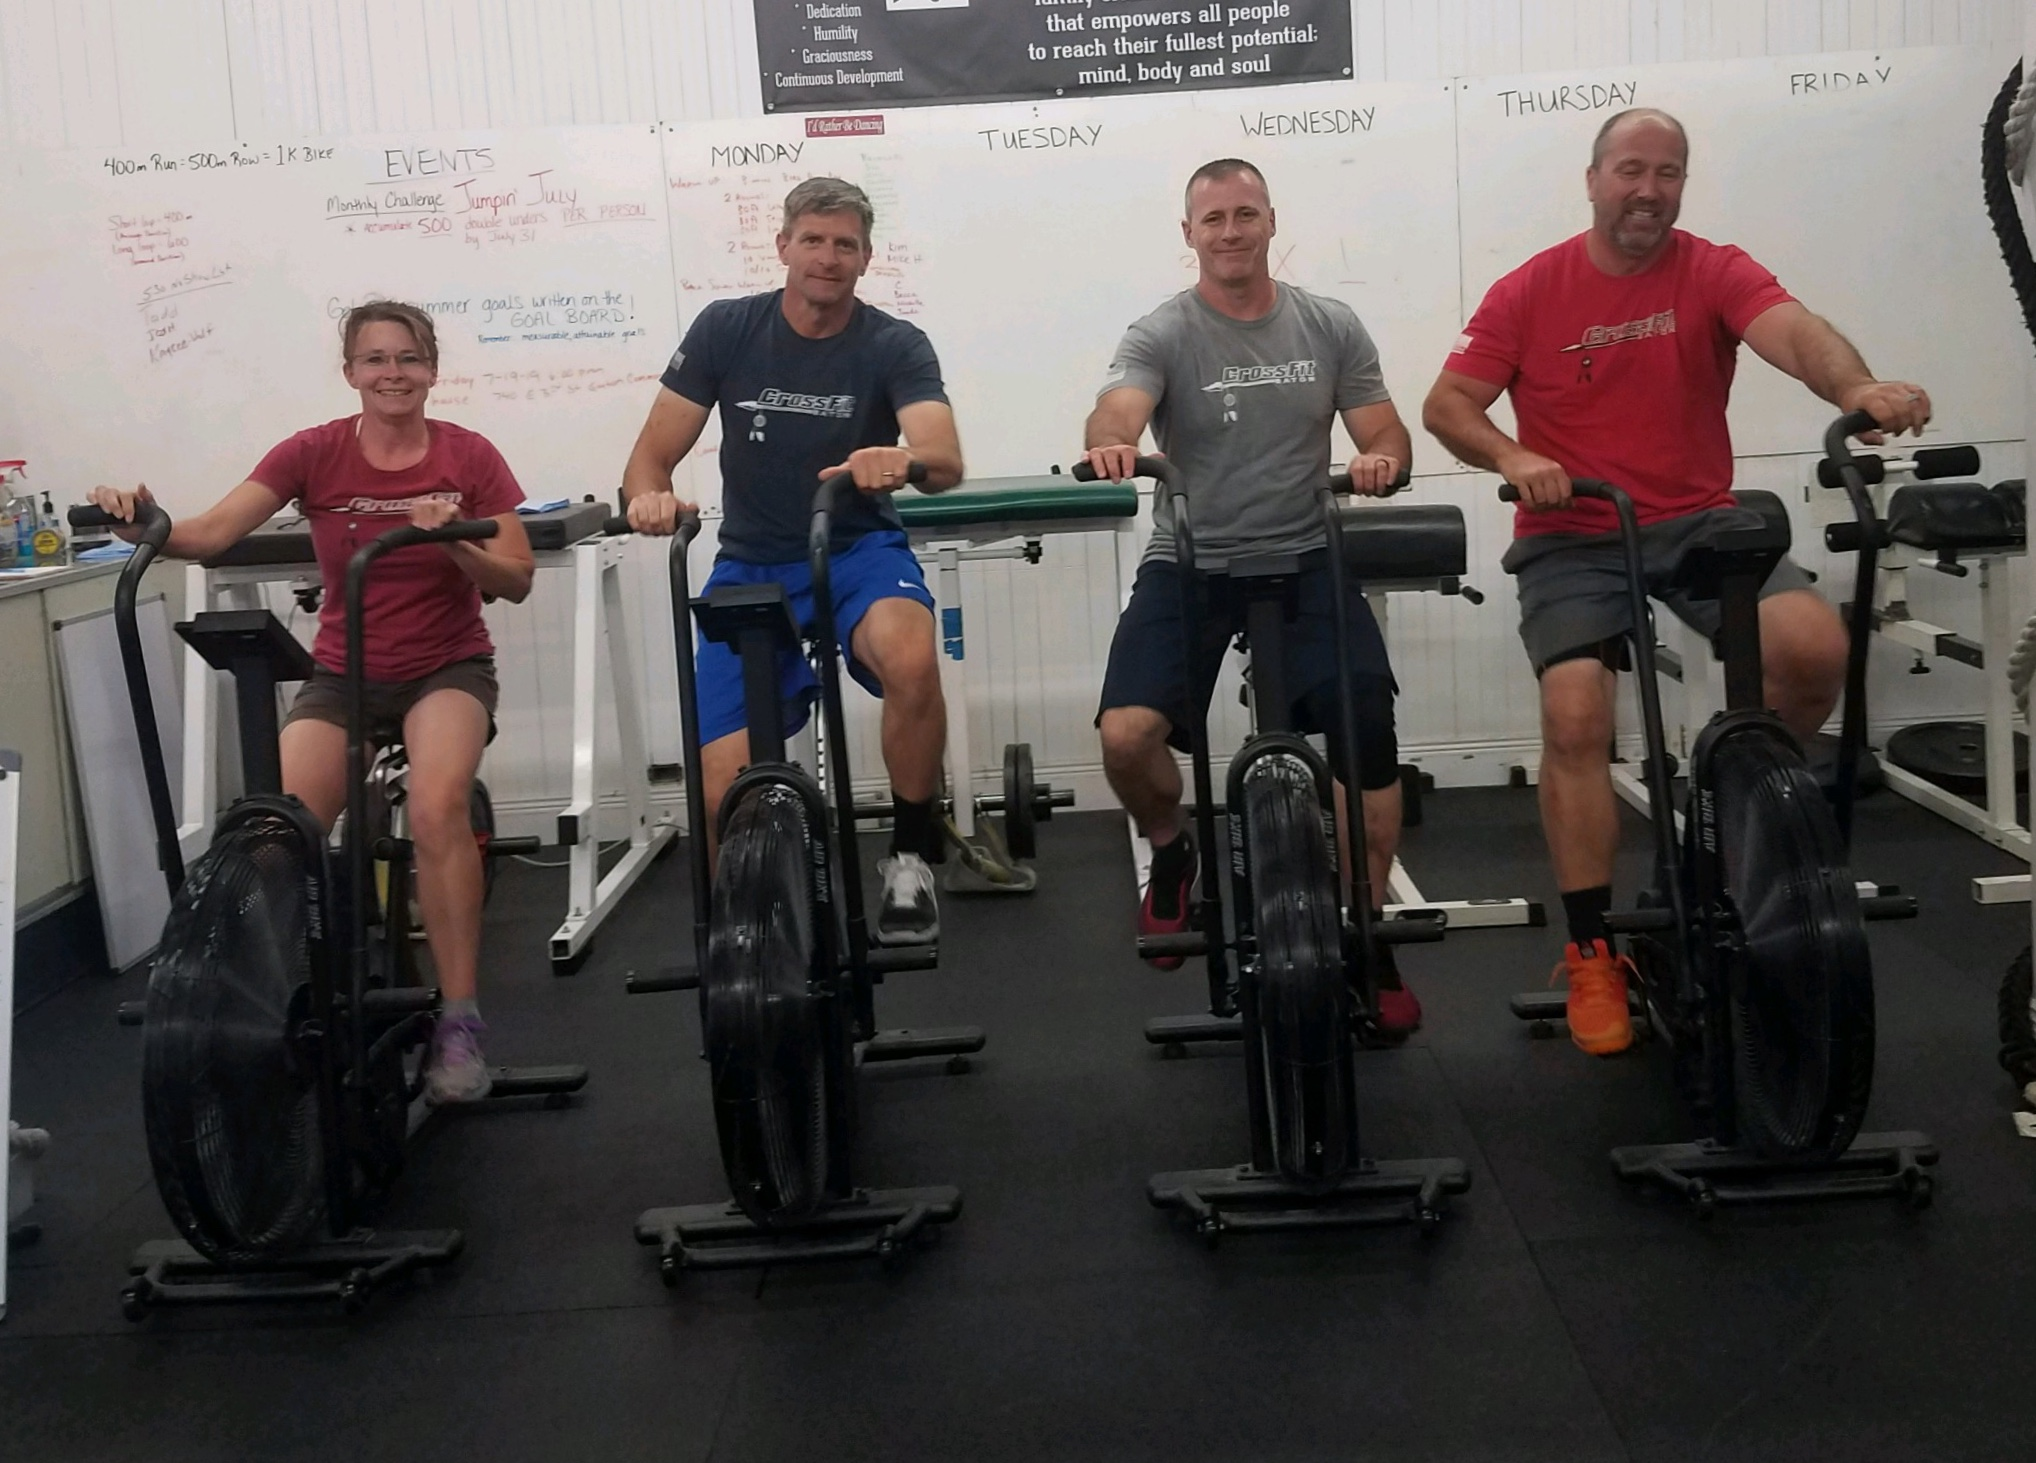 Obviously, these guys haven't done the wod yet, they're all still smiling!